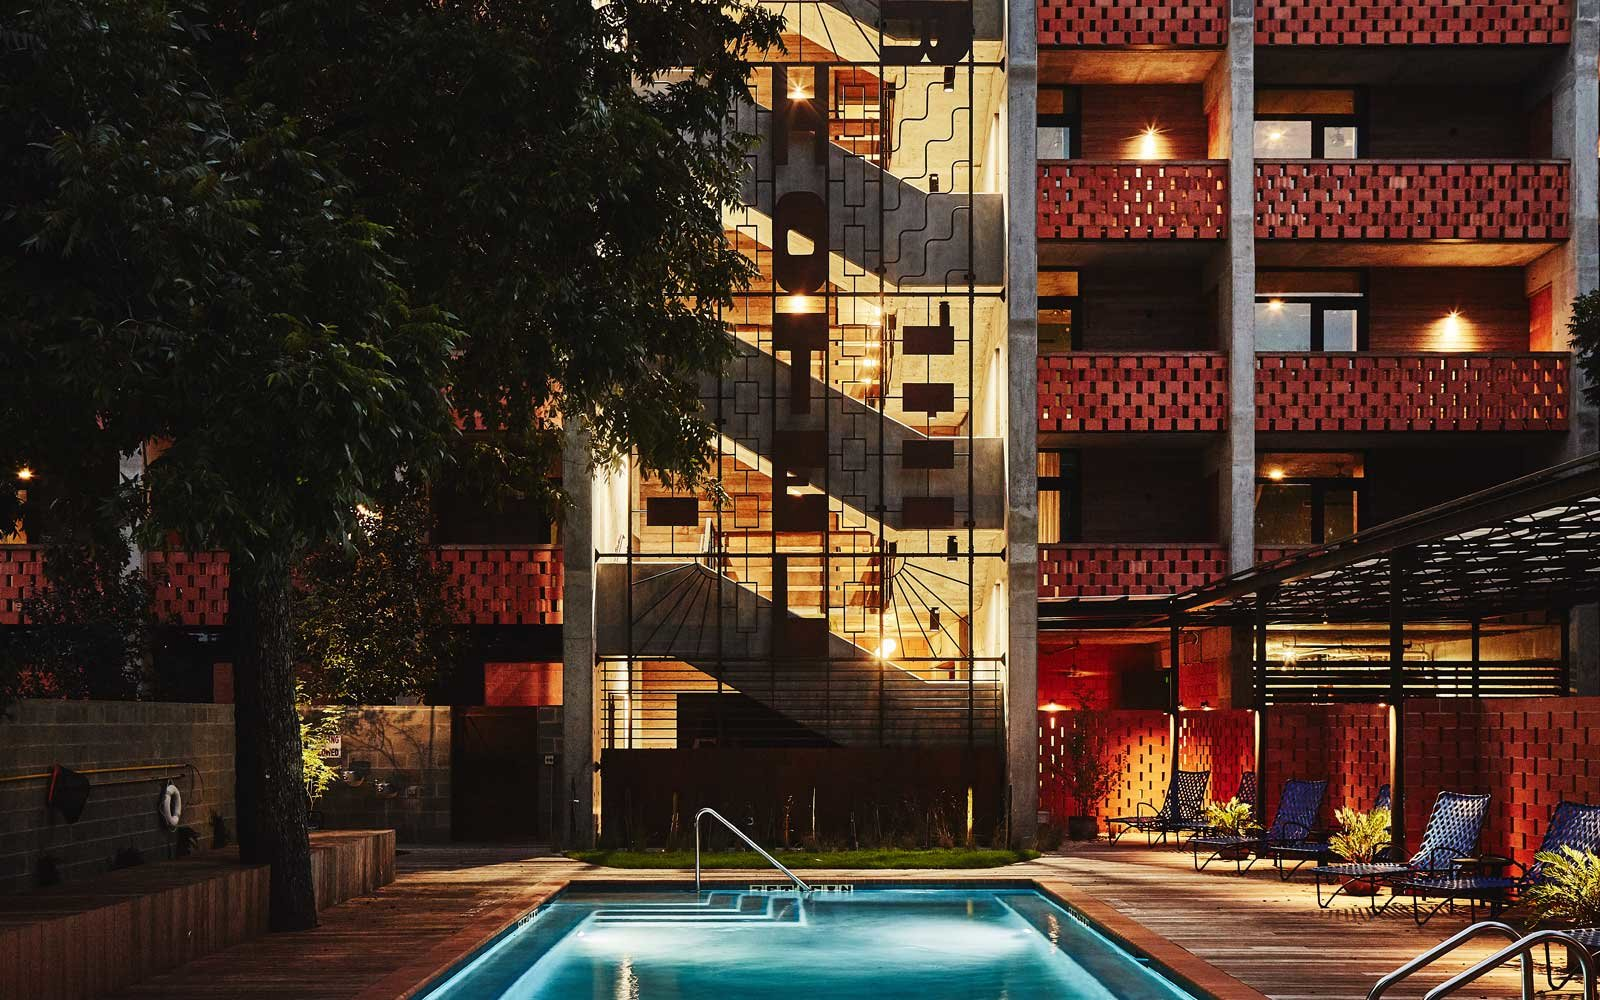 Pool at the Carpenter Hotel in Austin, Texas